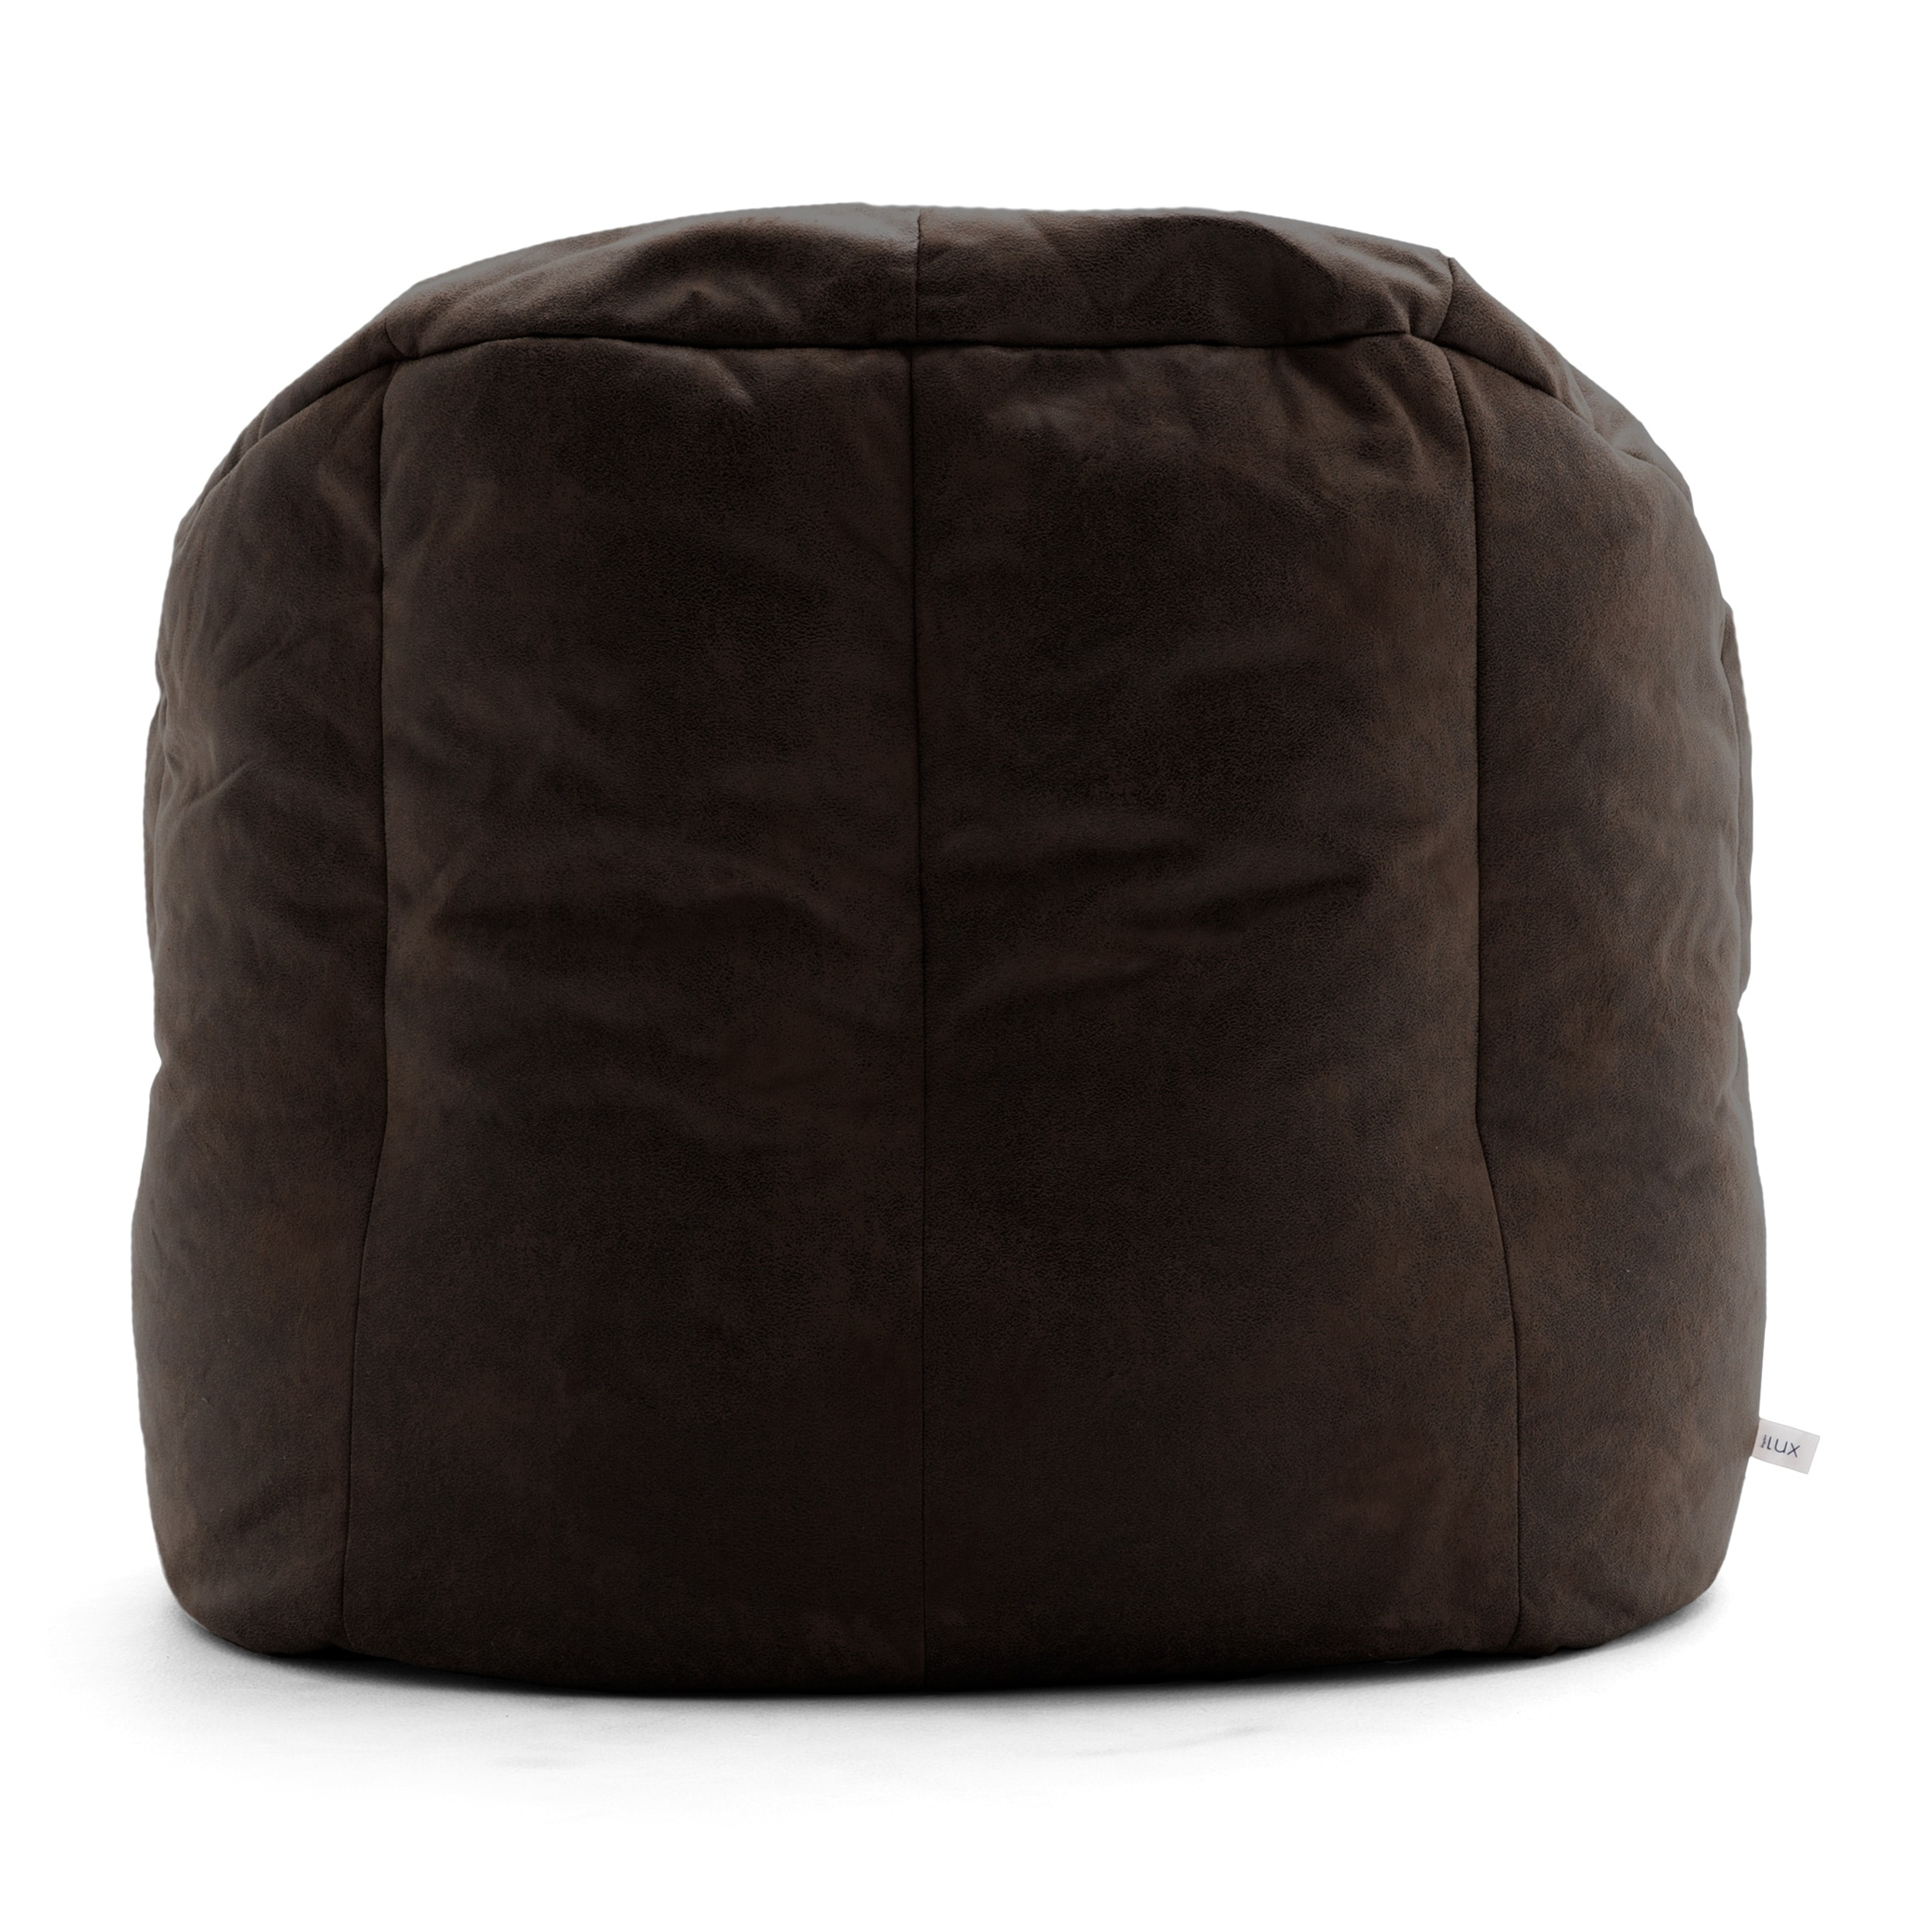 Big Joe Lux Large Milano Blazer Bean Bag Chair, Multiple